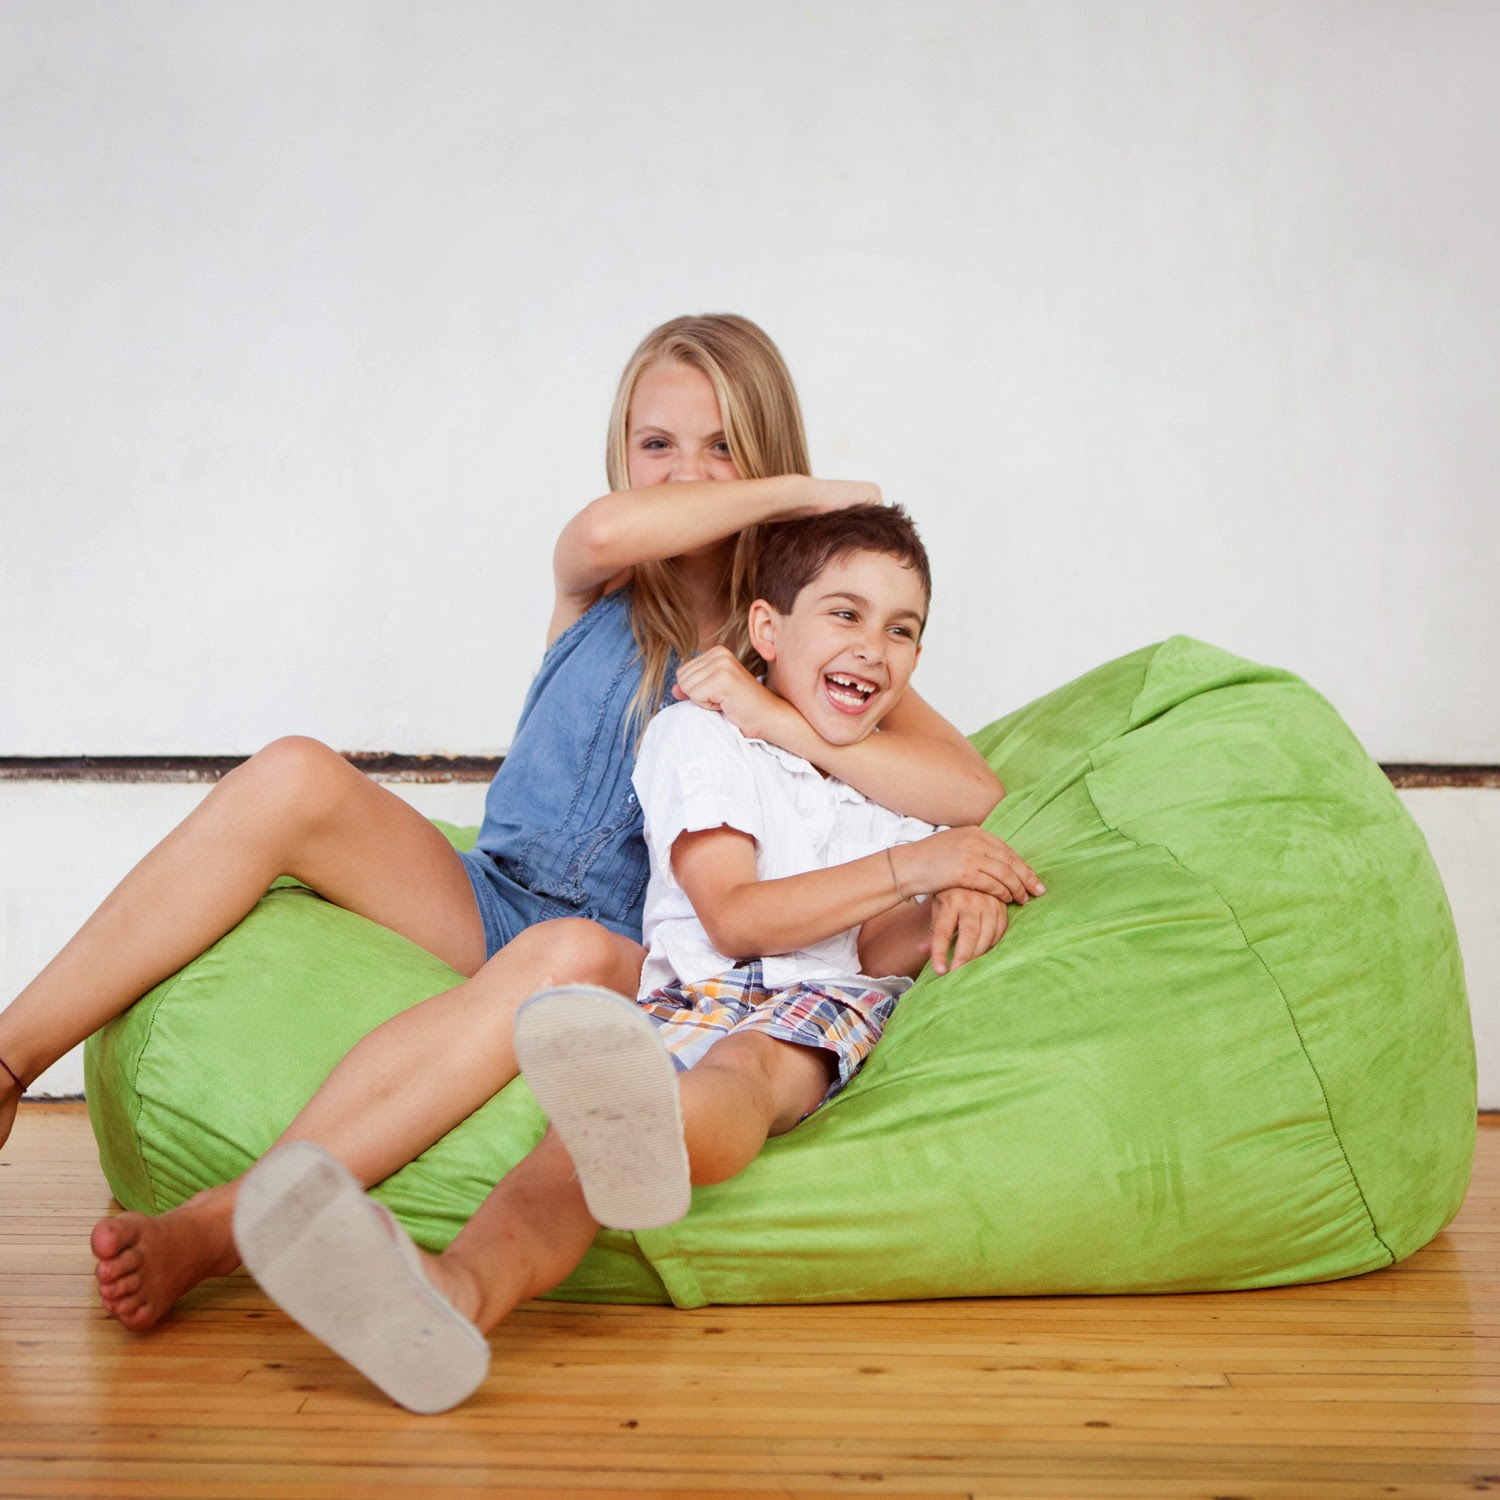 Comfy Bean Bag Chairs: Kids and Bean Bag Chairs, They Just ...